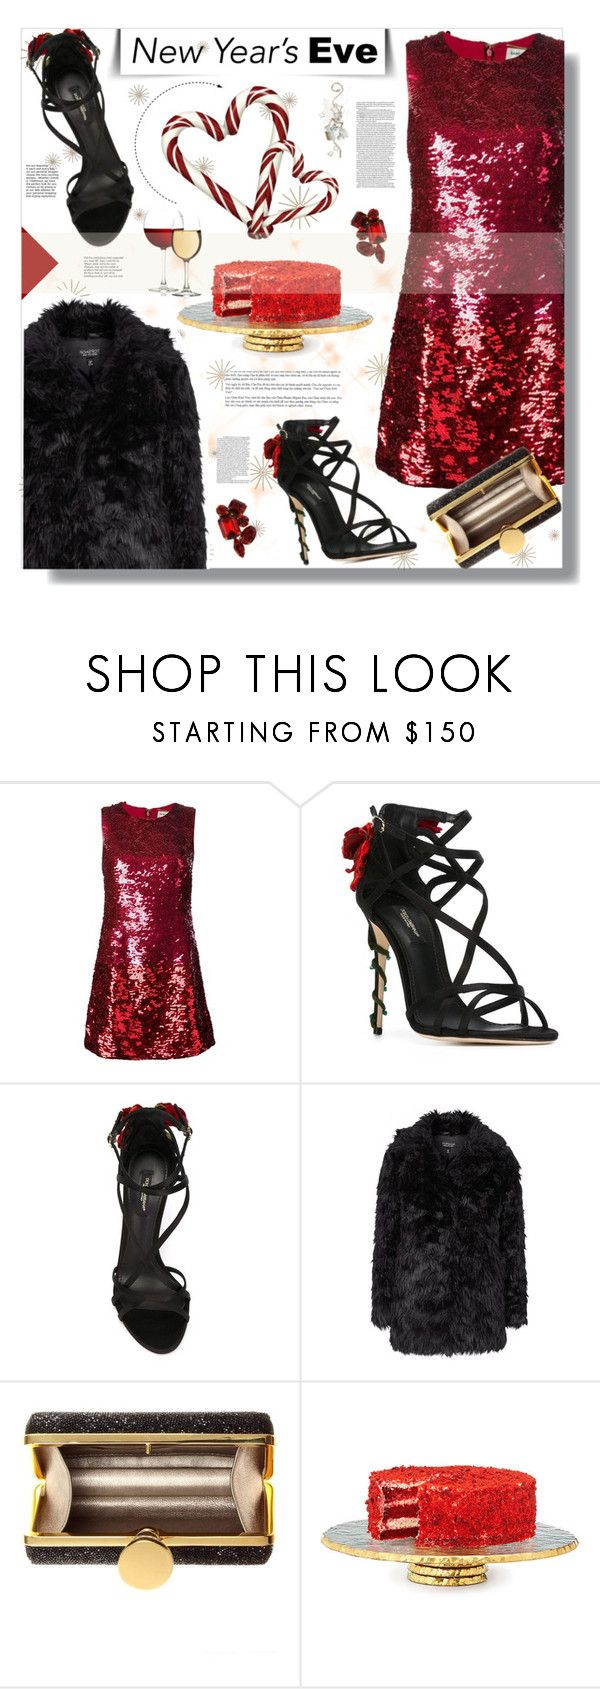 NYE Dance Party by prigaut on Polyvore featuring Yves Saint Laurent, Topshop, Dolce&Gabbana, Tom Ford, Tiffany & Co., danceparty and newyear